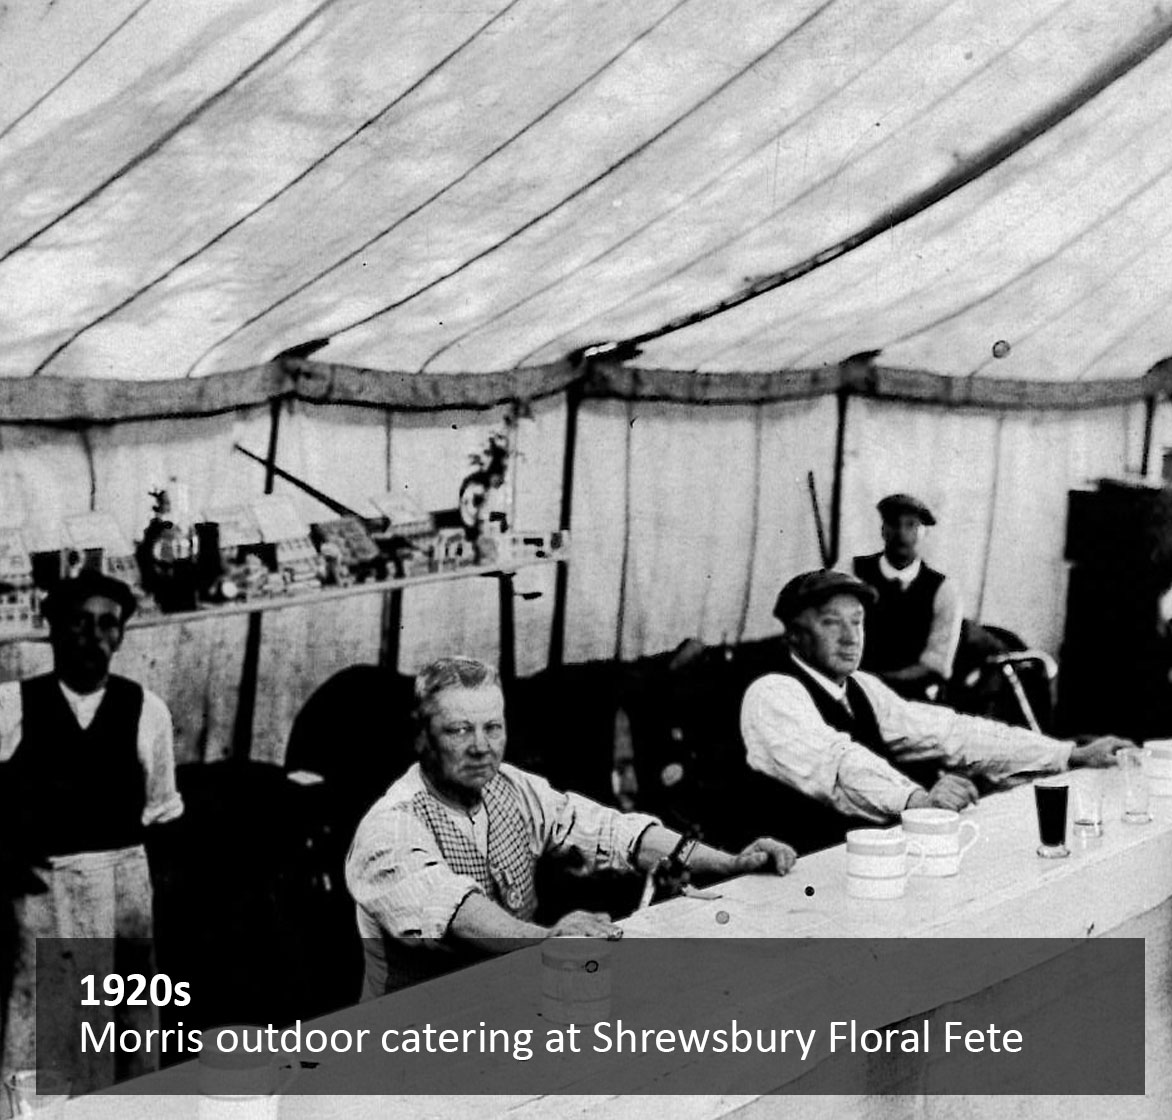 Morris outdoor catering at Shrewsbury Floral Fete